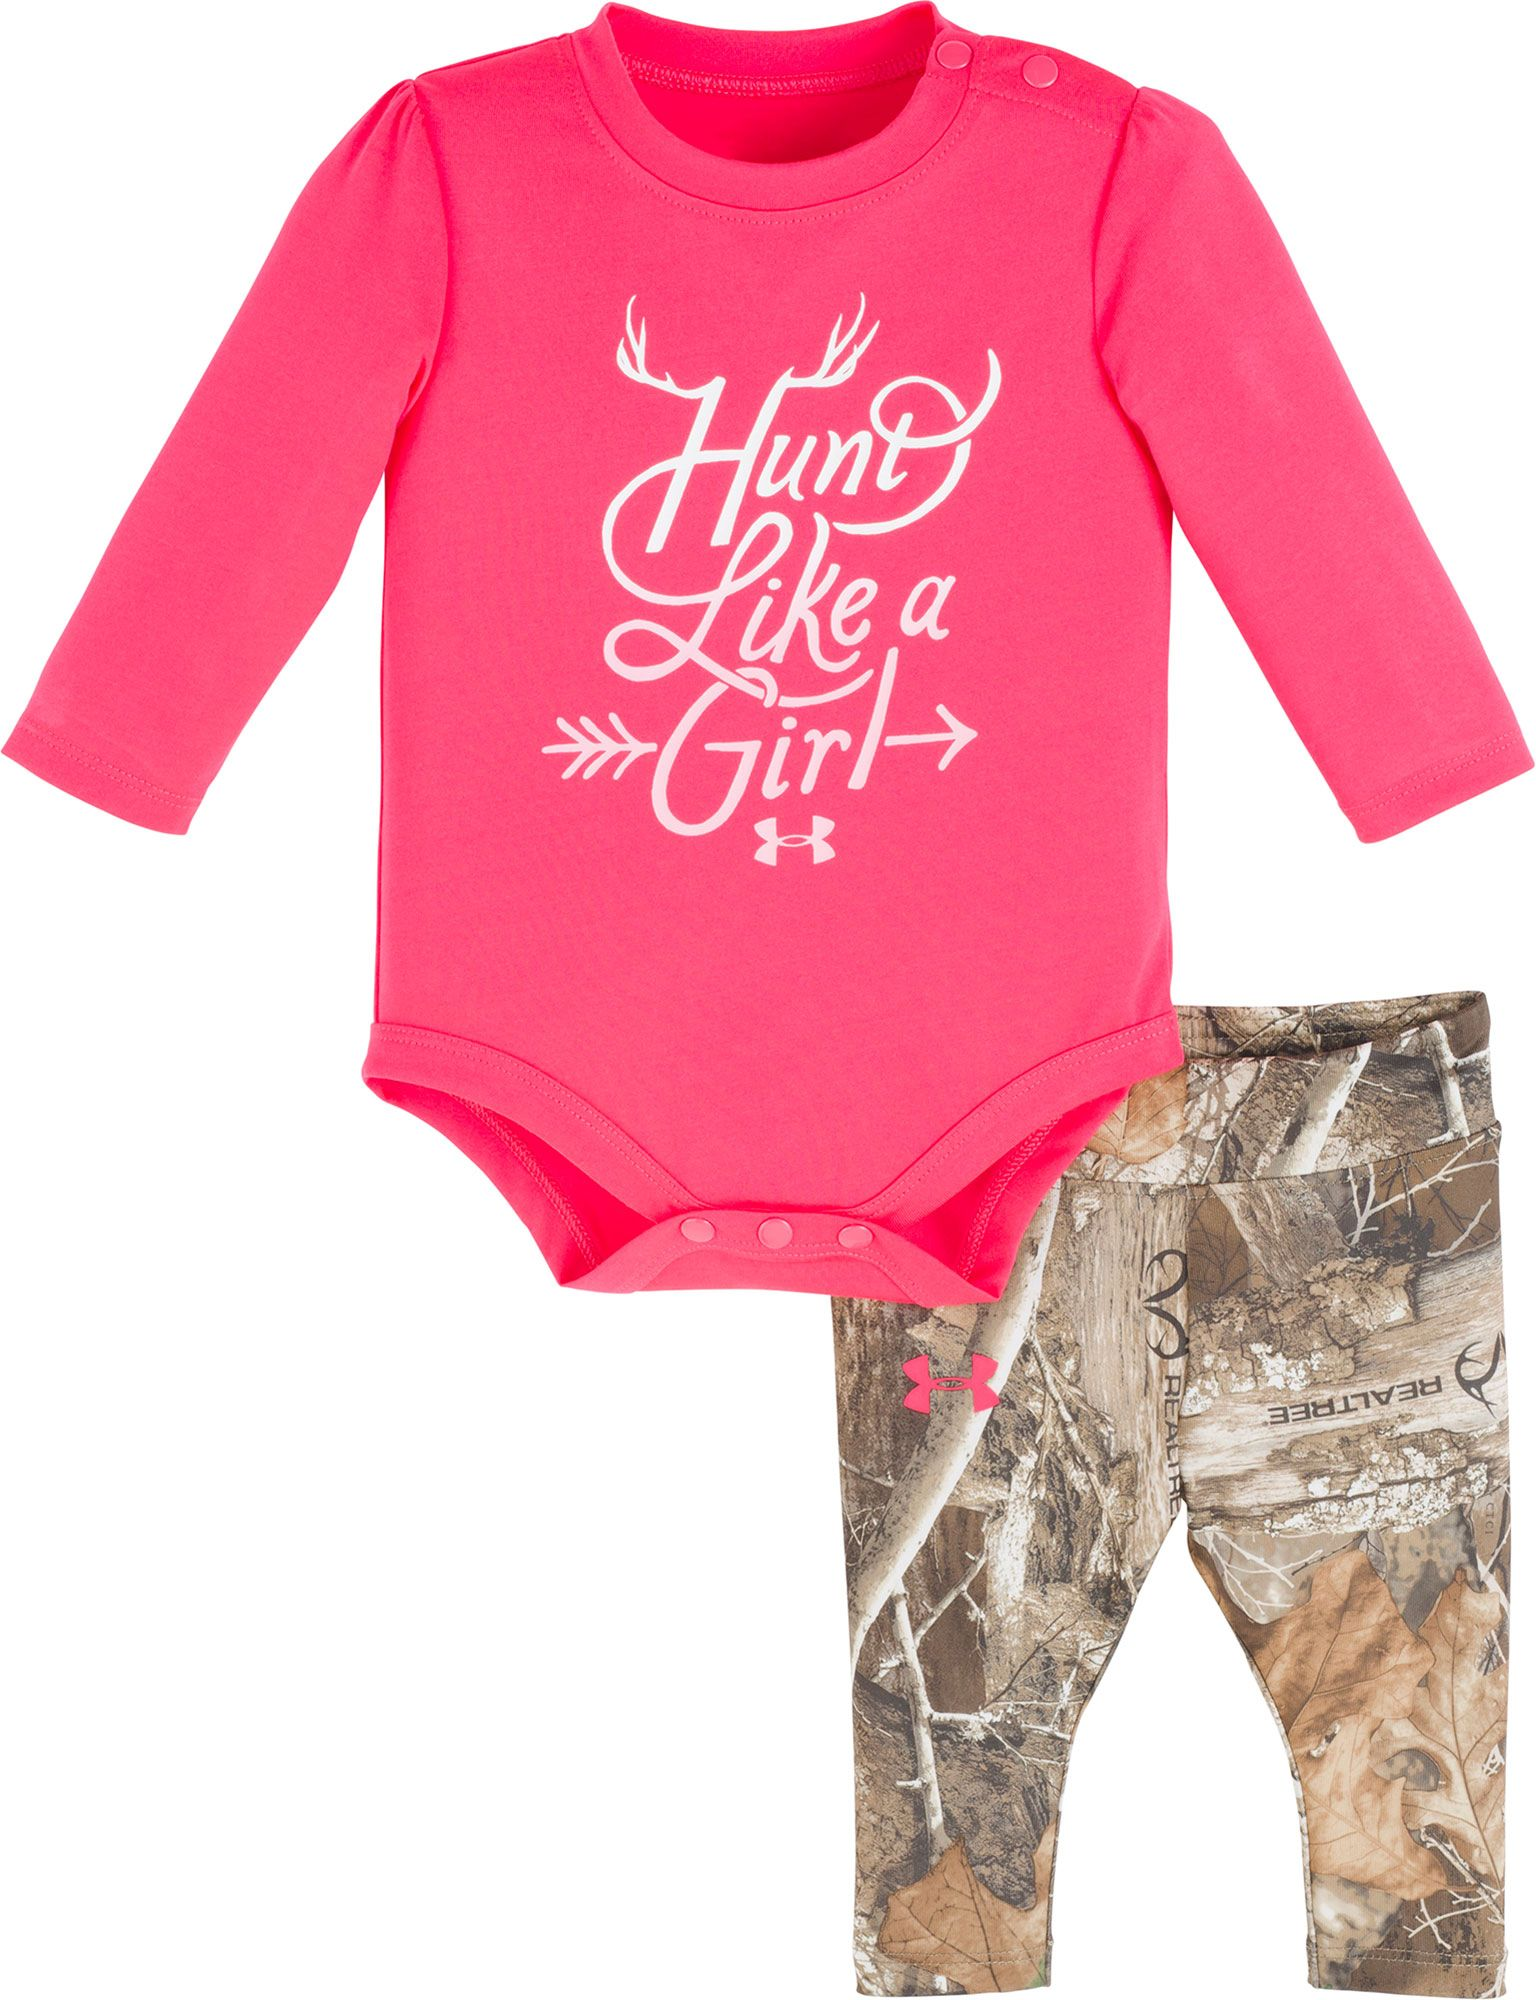 Under Armour Newborn Girls' Hunt Like a Girl Long Sleeve Onesie and Pant Set, Girl's, Size: 6-9M, Penta Pink thumbnail